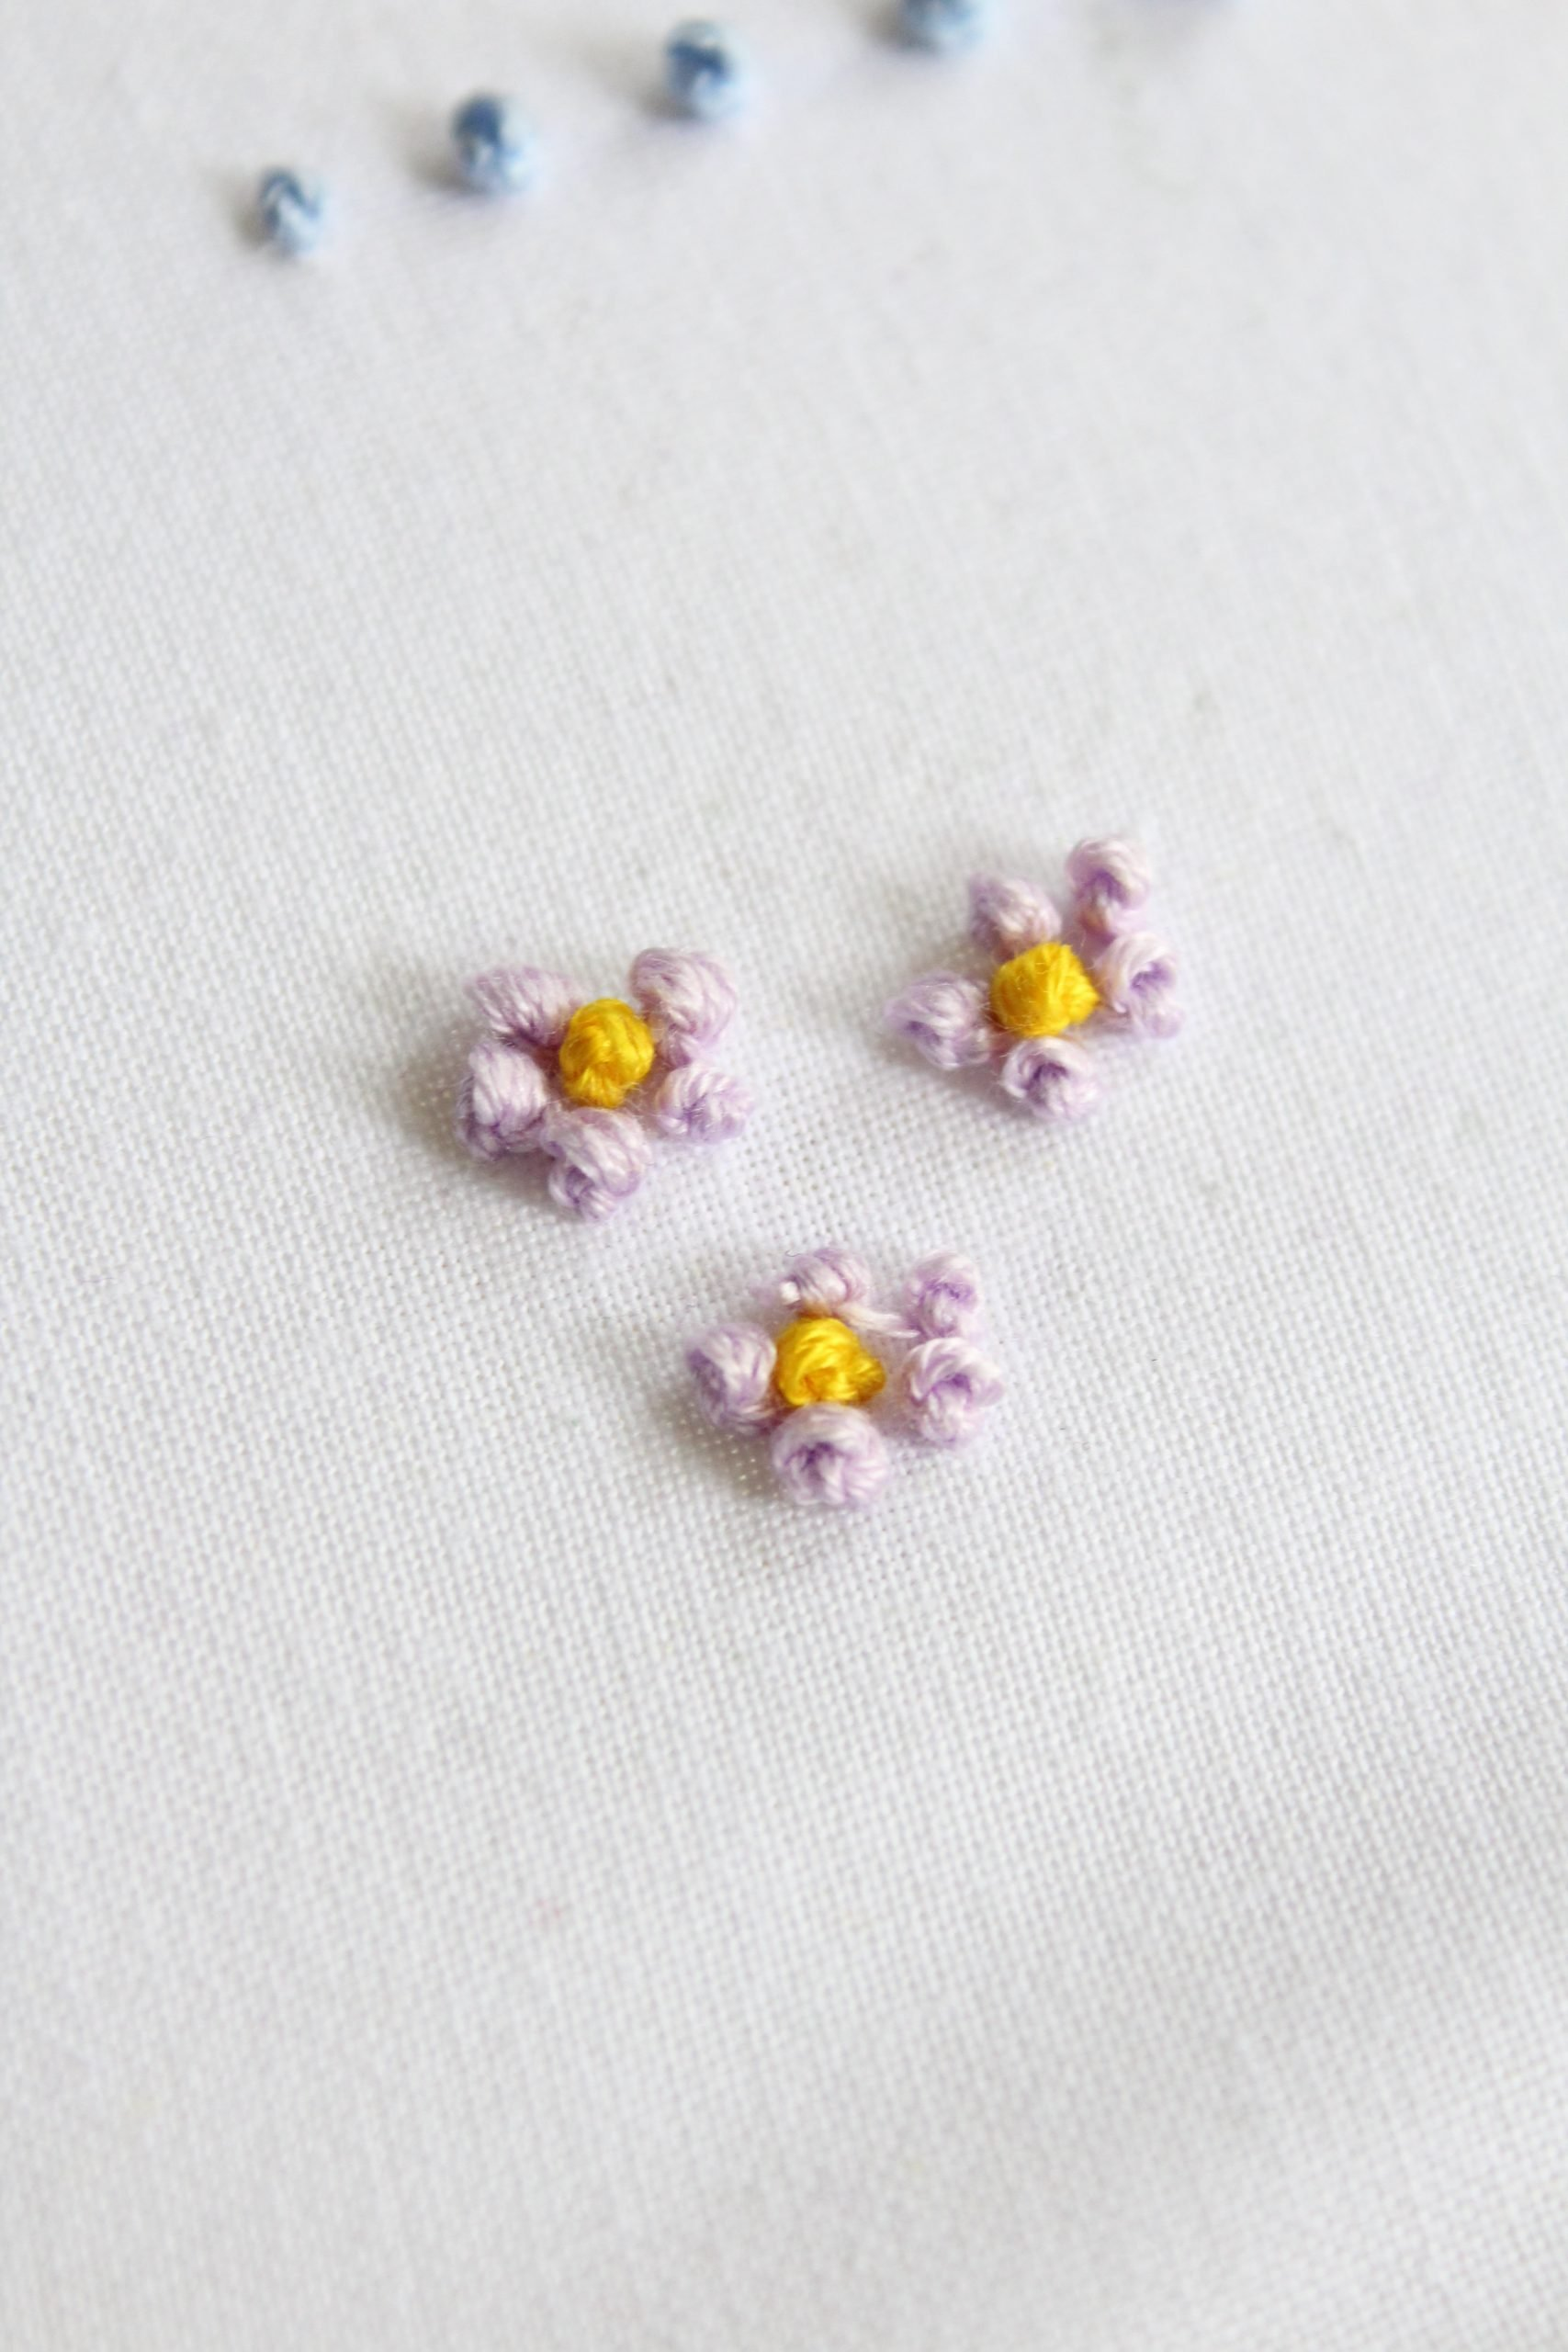 How To Make A French Knot The Easy Way